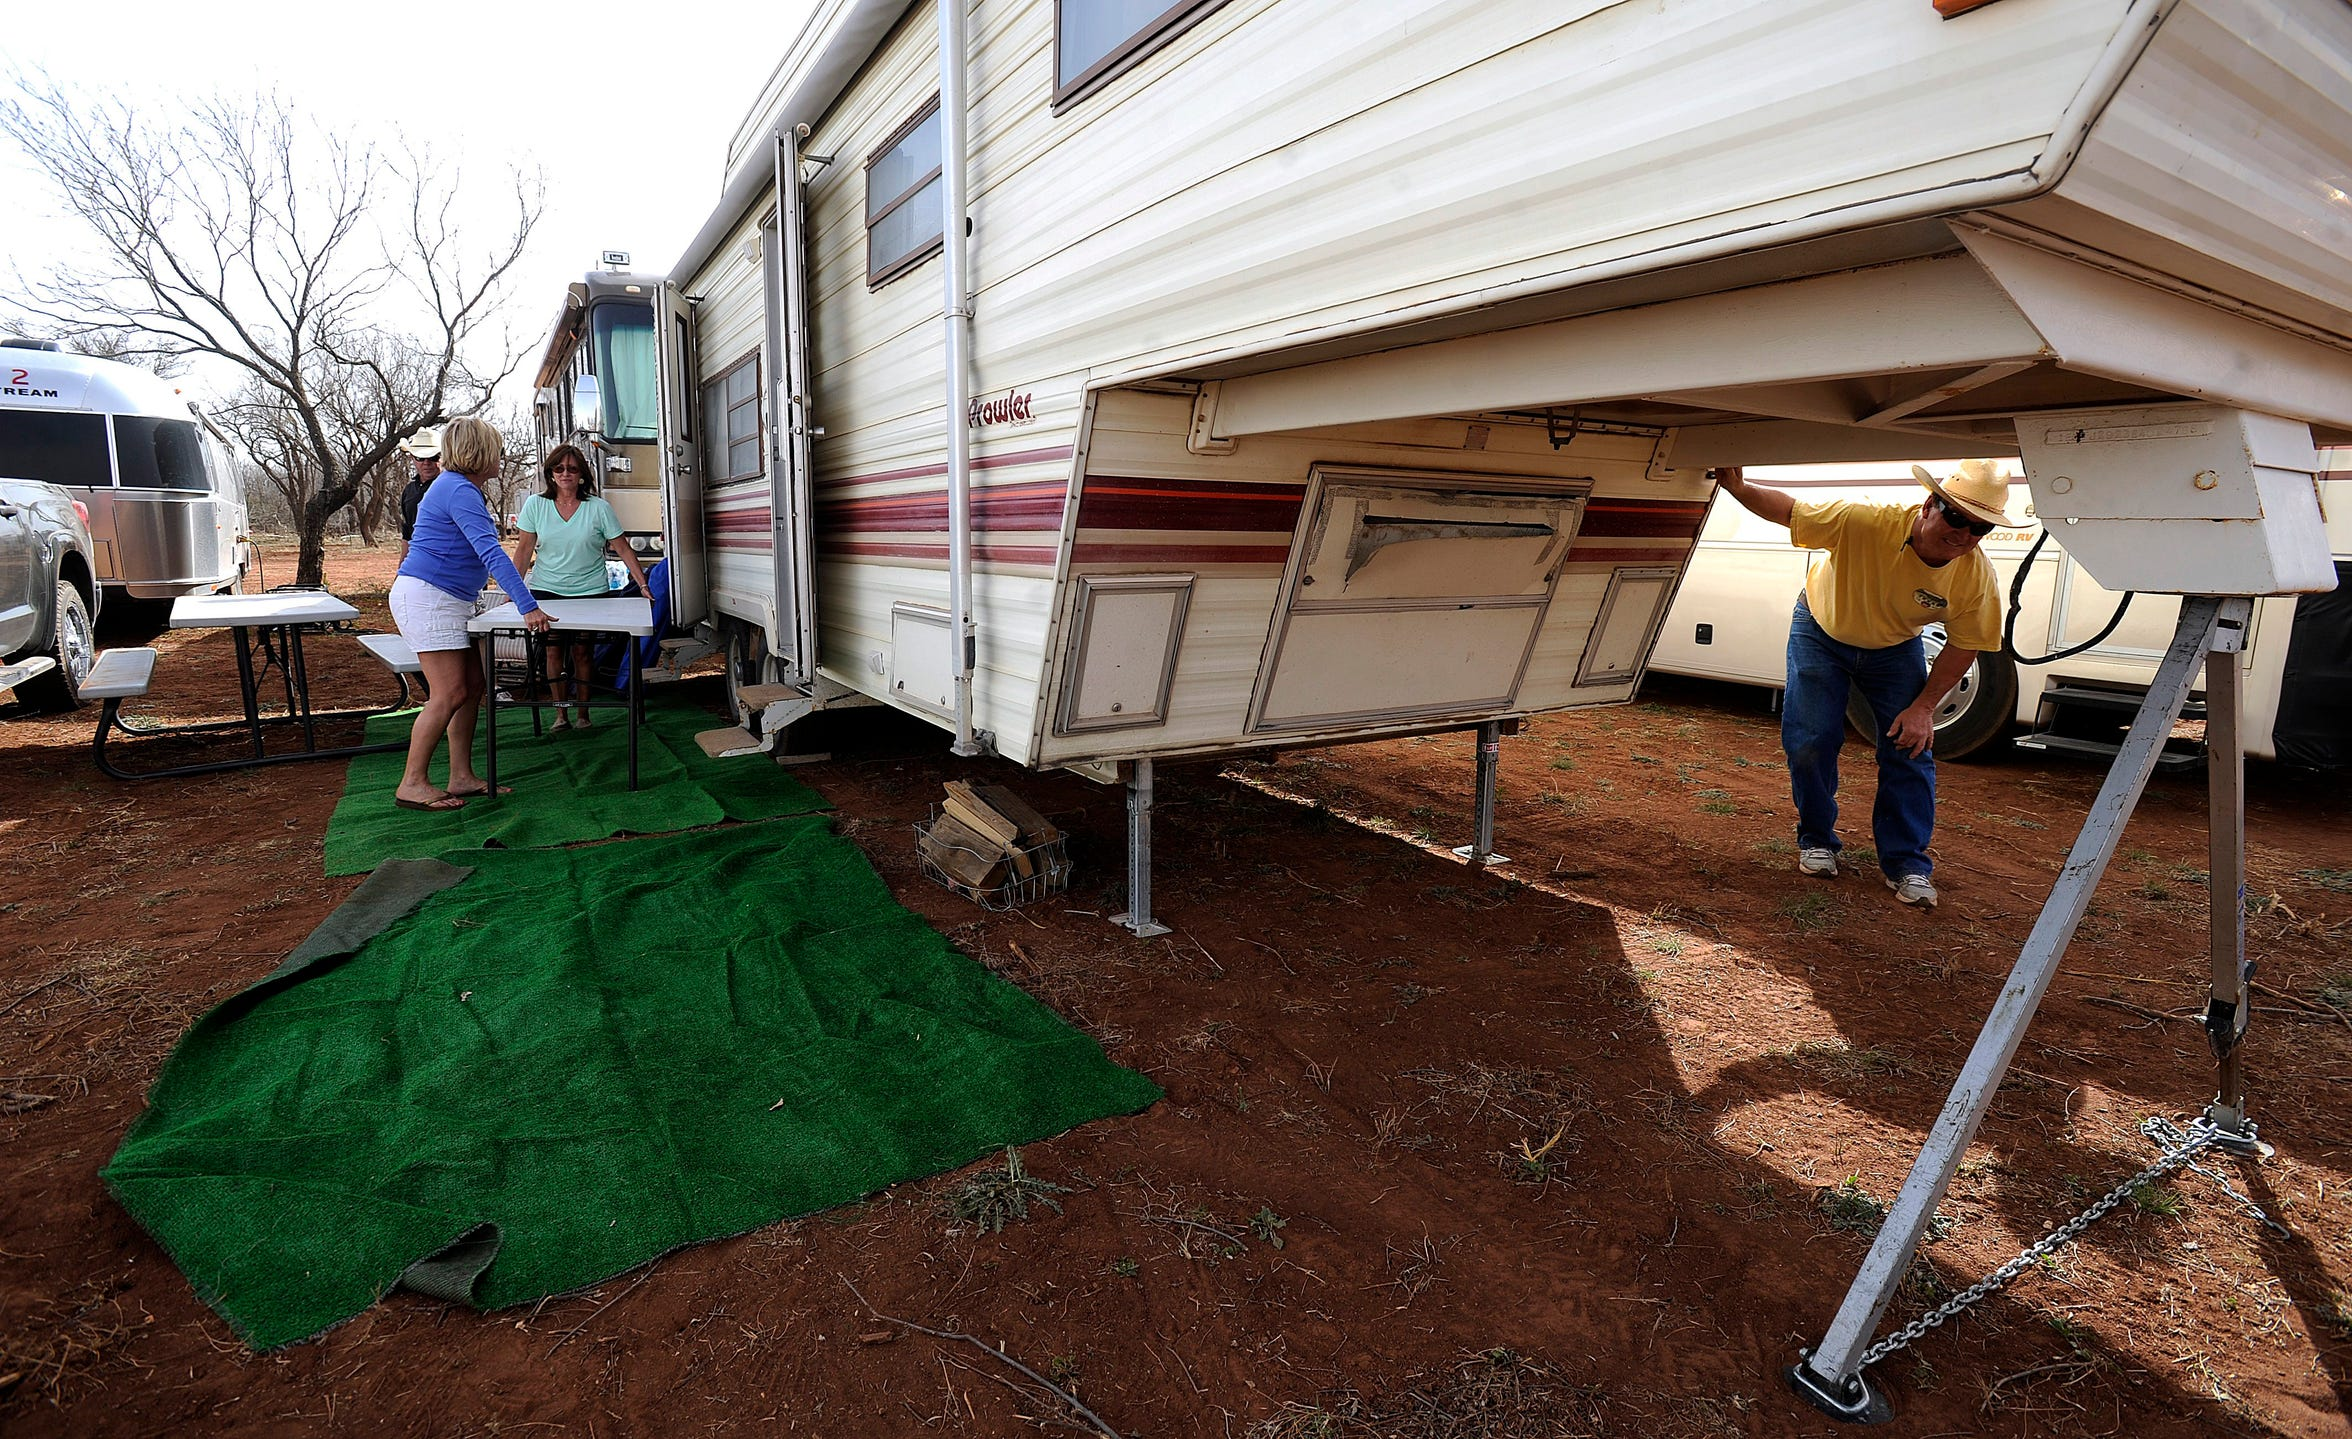 Todd Ethridge (right), of Coleman, sets up his camper in the RV area of the Back Porch of Texas. RV spots have topped 400, and all are gone for this year's 10th anniversary show.